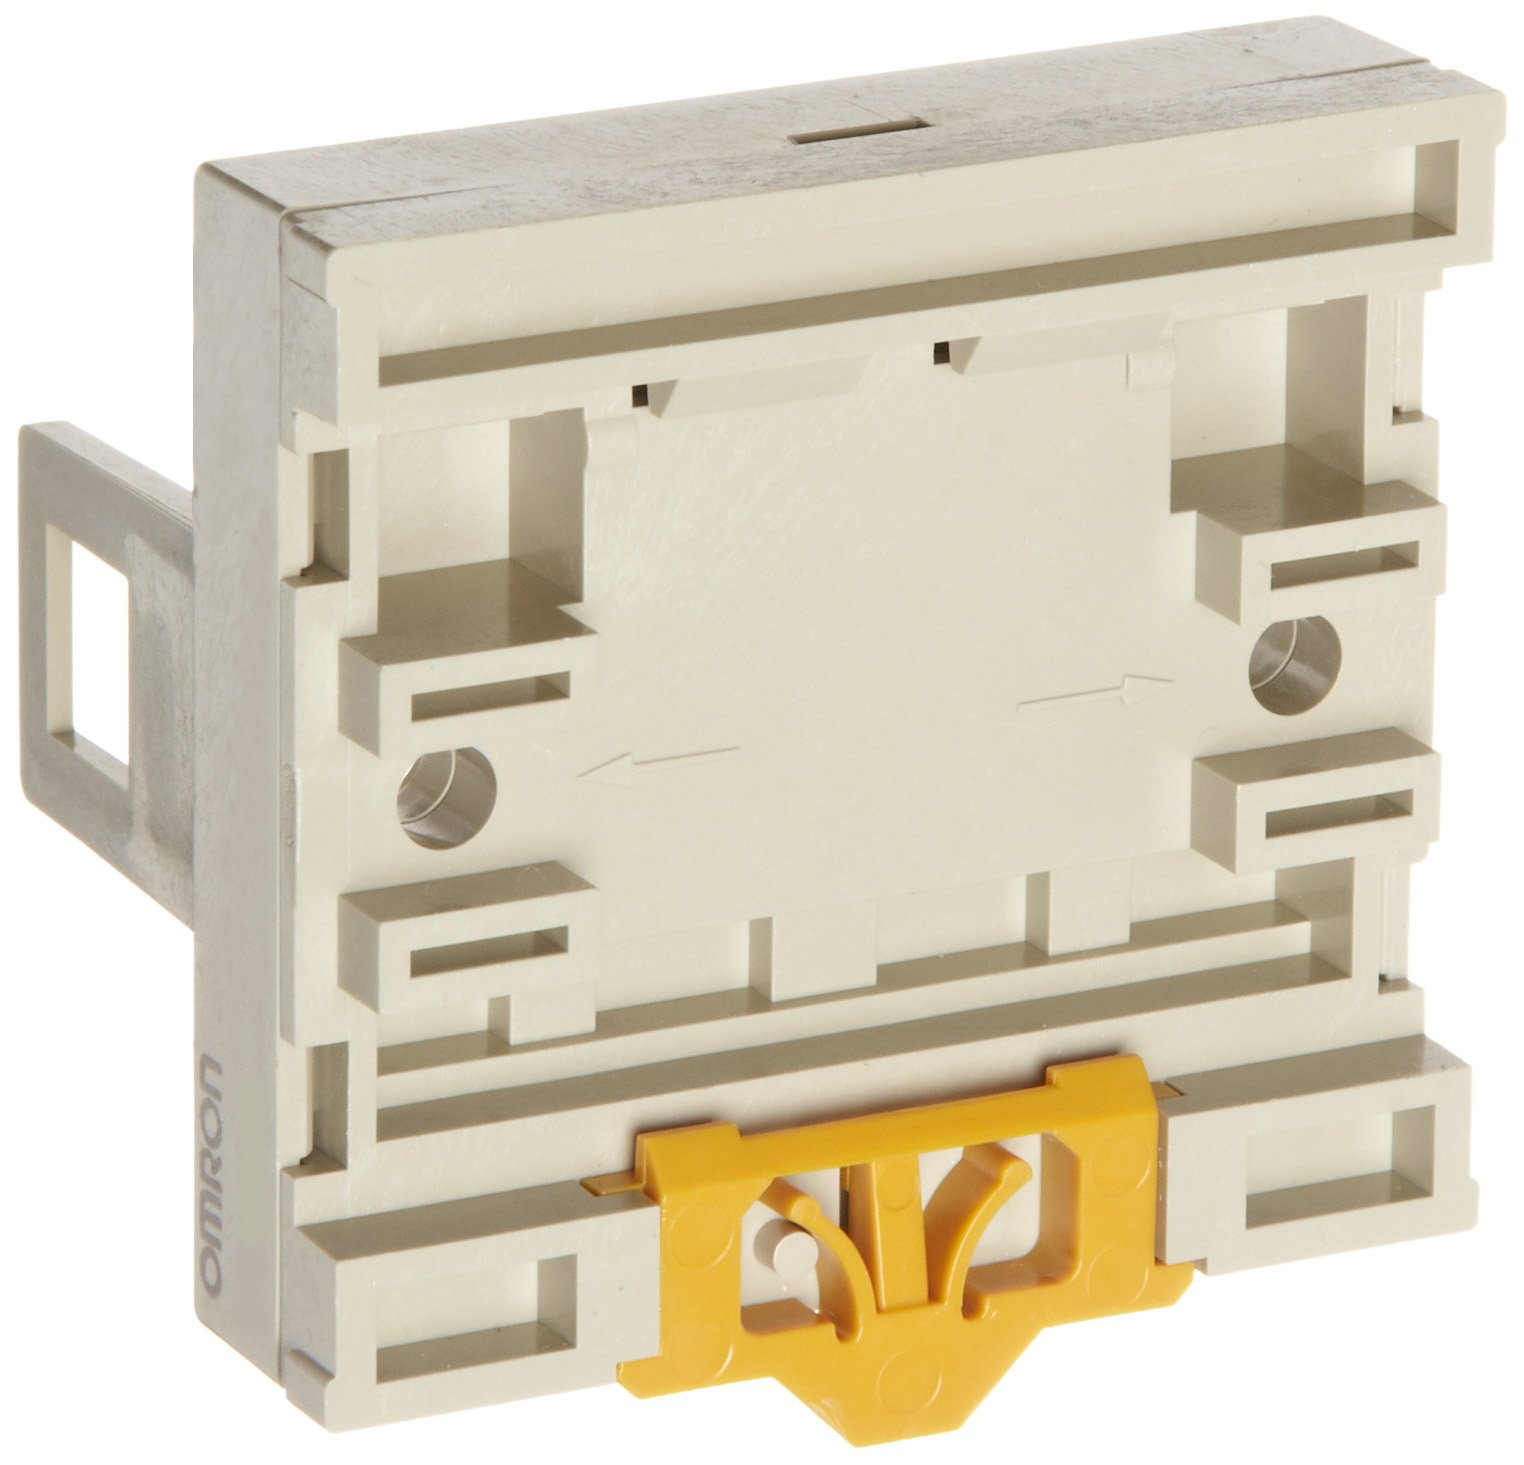 Omron P7LF-D General Purpose Adaptor, Track/Surface Mounting, For Use With G7L Series Relays